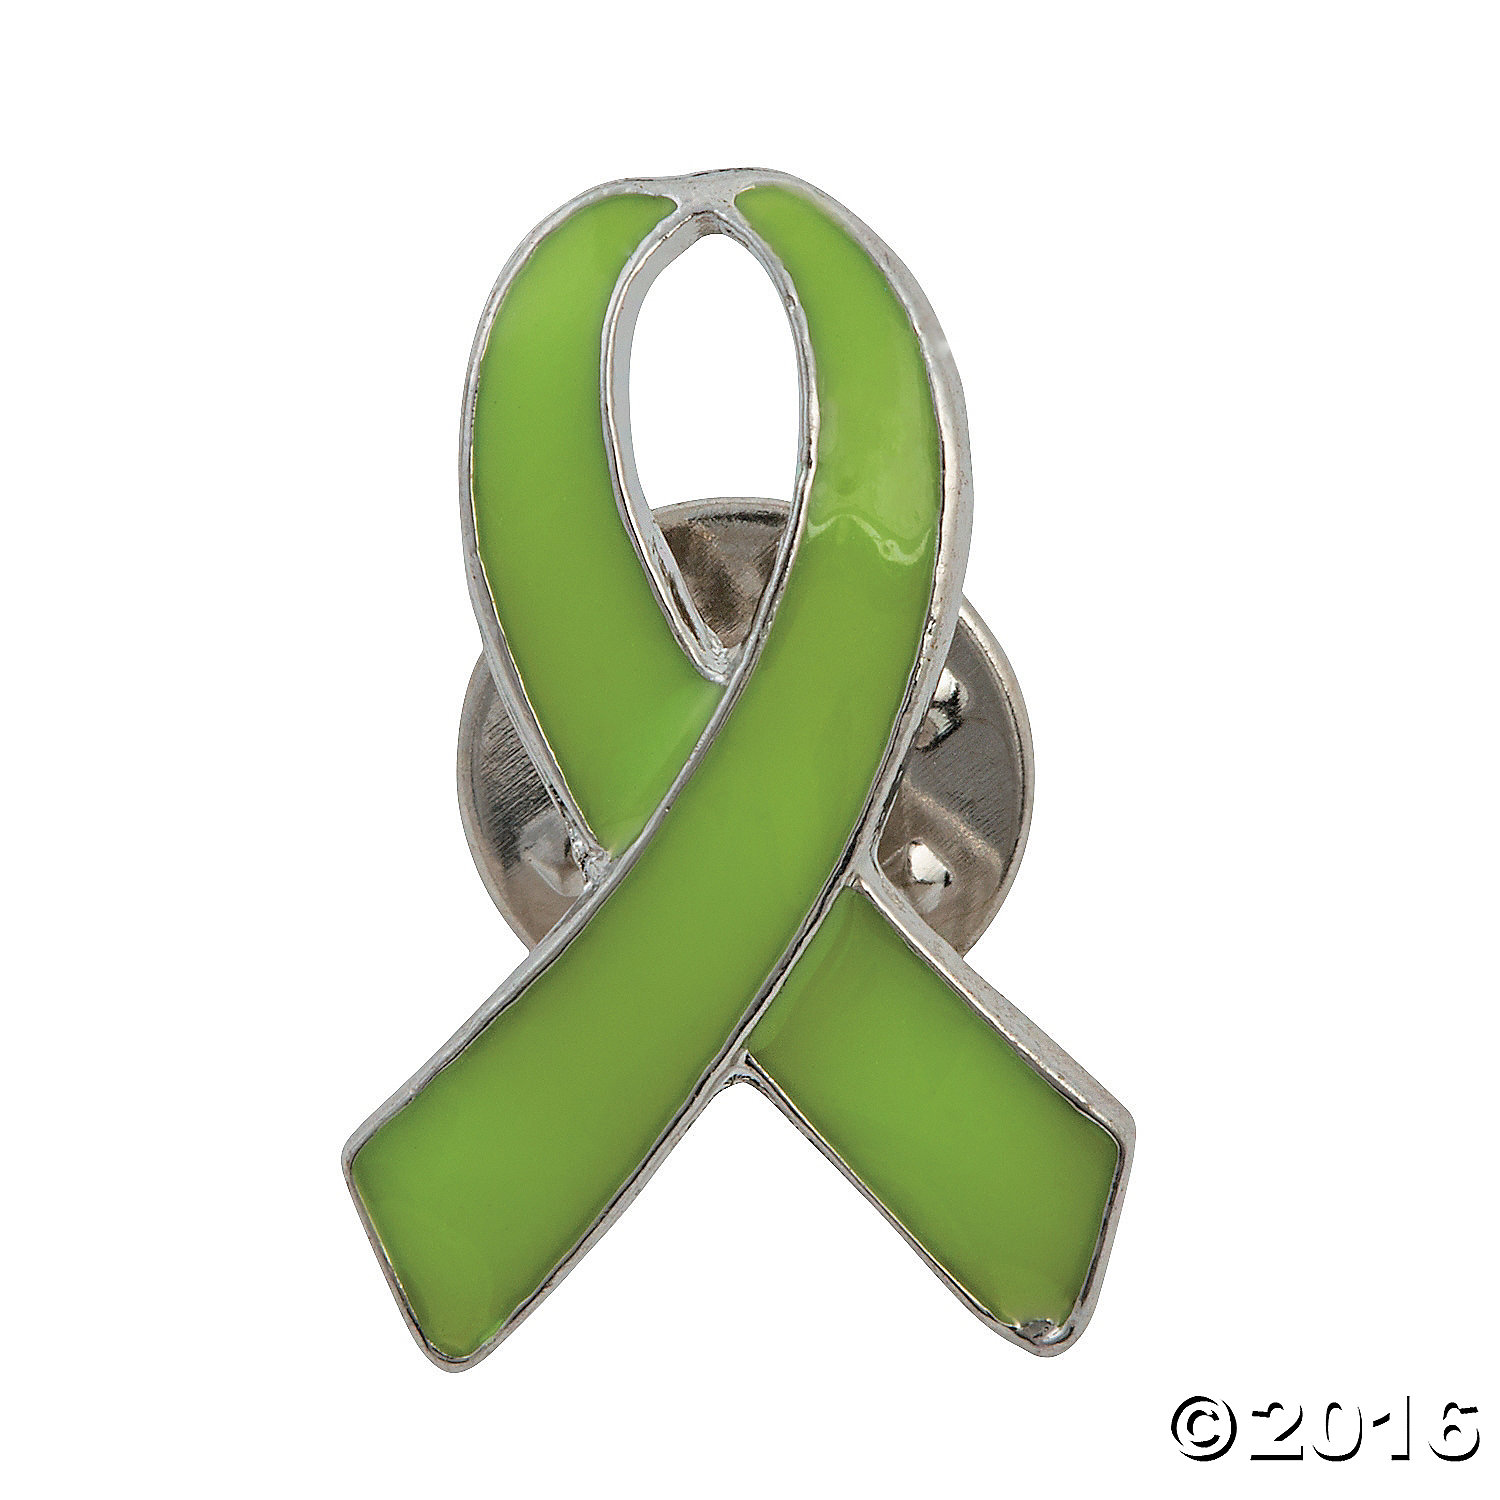 pick multiple awareness rockyourcausejewelry girl survivor illness a necklace learn lyme to orange spoonie surf leukemia on your ribbon like pin fight sclerosis cancer sink by refuse bracelet invisible